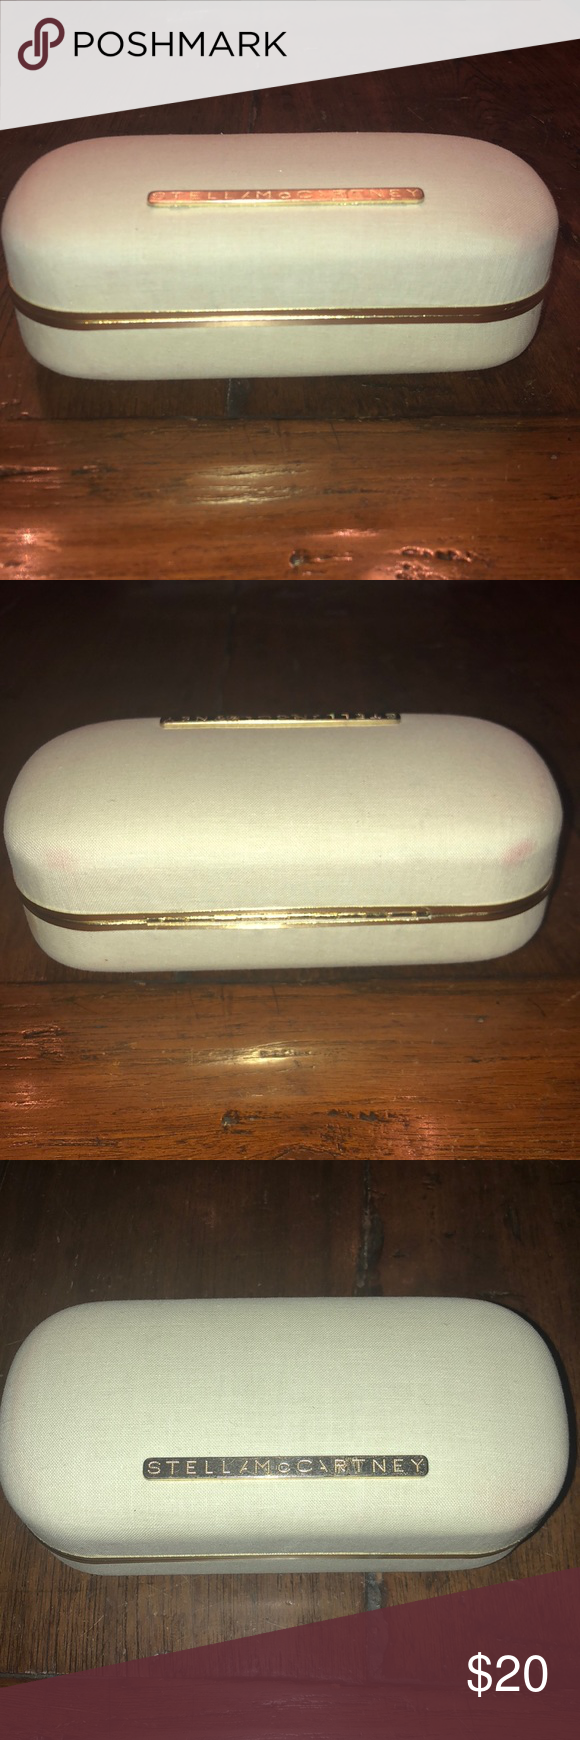 STELLA MCCARTNEY hard eyewear case STELLA MCCARTNEY Hard Eyewear case beige fabric, purple velvet interior, brass hardware. Very lightly loved, comes with wrapped, unused, cloth for cleaning lenses. Beautiful case, great condition, super protective and chic! Stella McCartney Accessories Sunglasses